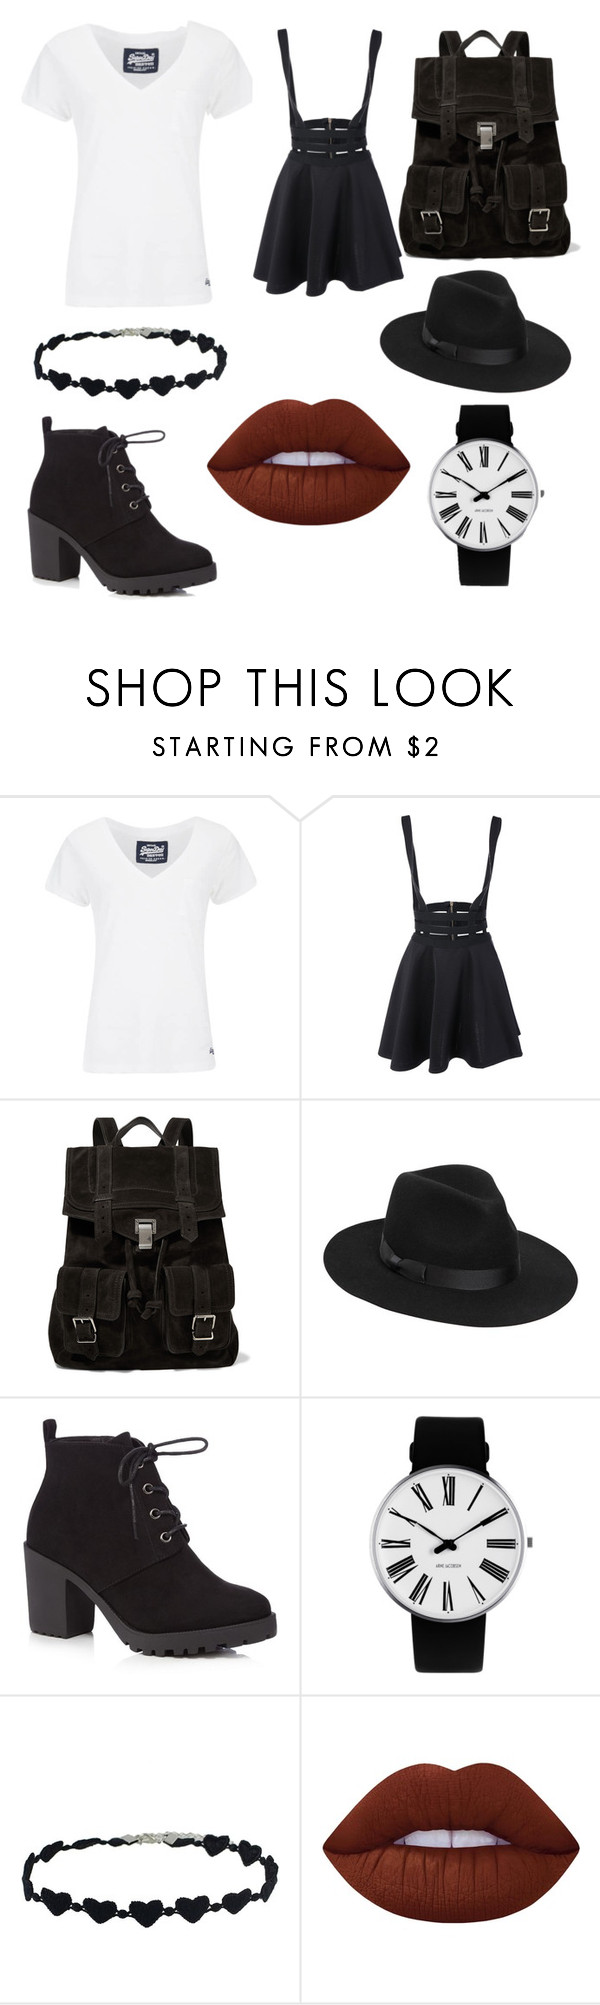 untitled 118 by cinnabunphil on polyvore featuring superdry proenza schouler lack red herringcolor